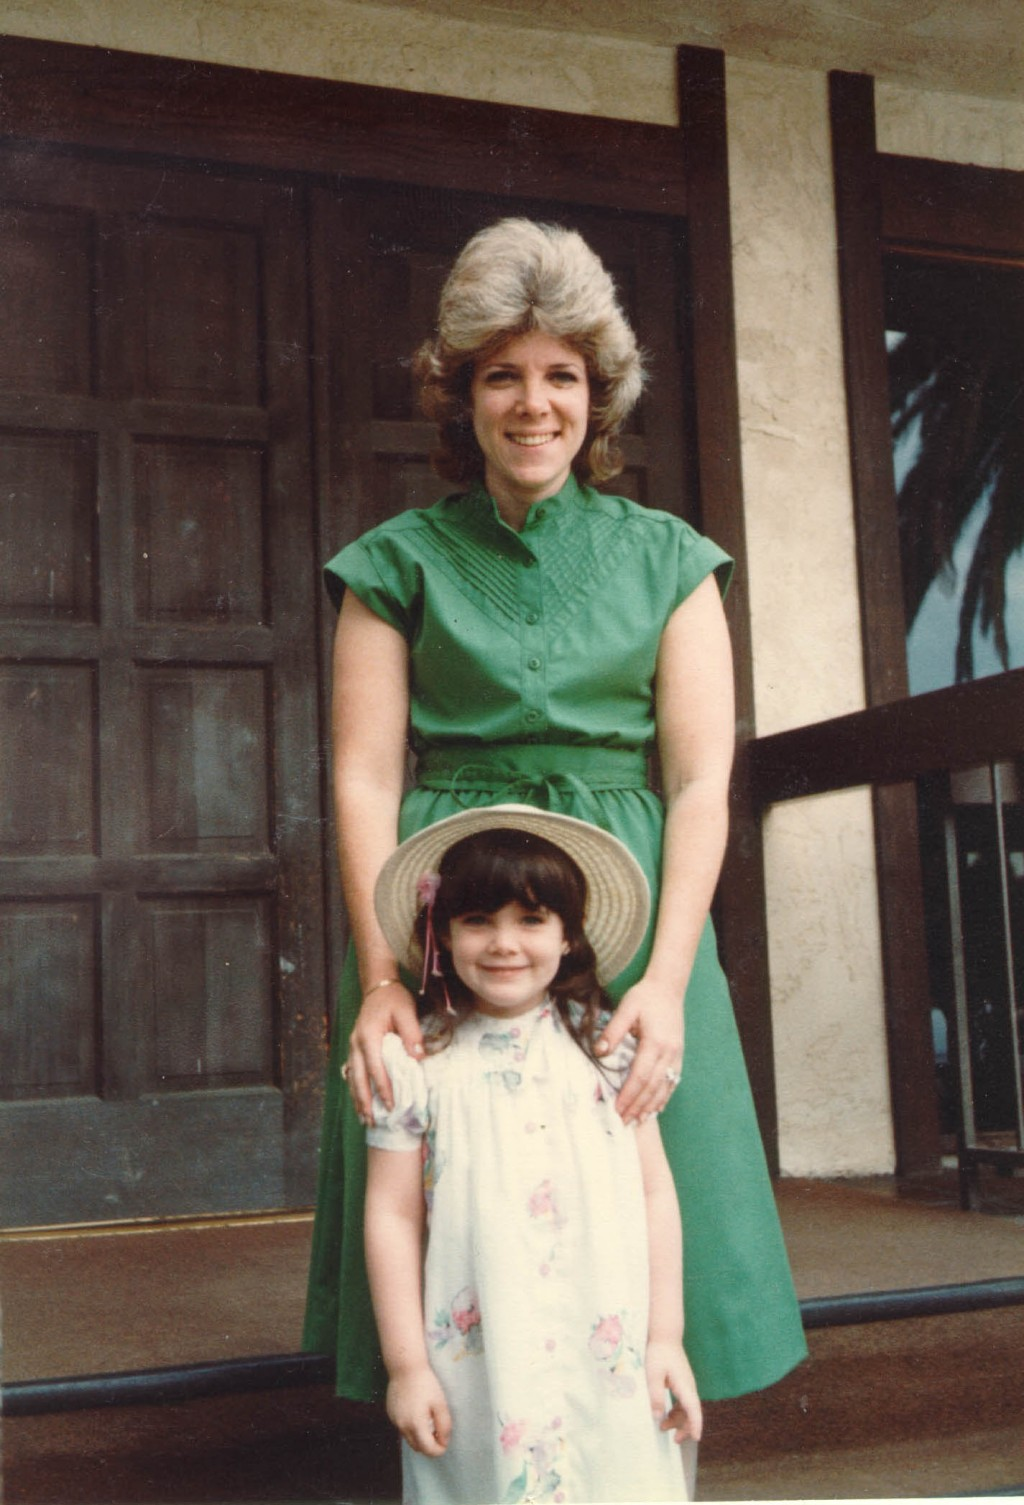 Shelly and Alexis Danielle, Blanka's daughter and granddaughter.